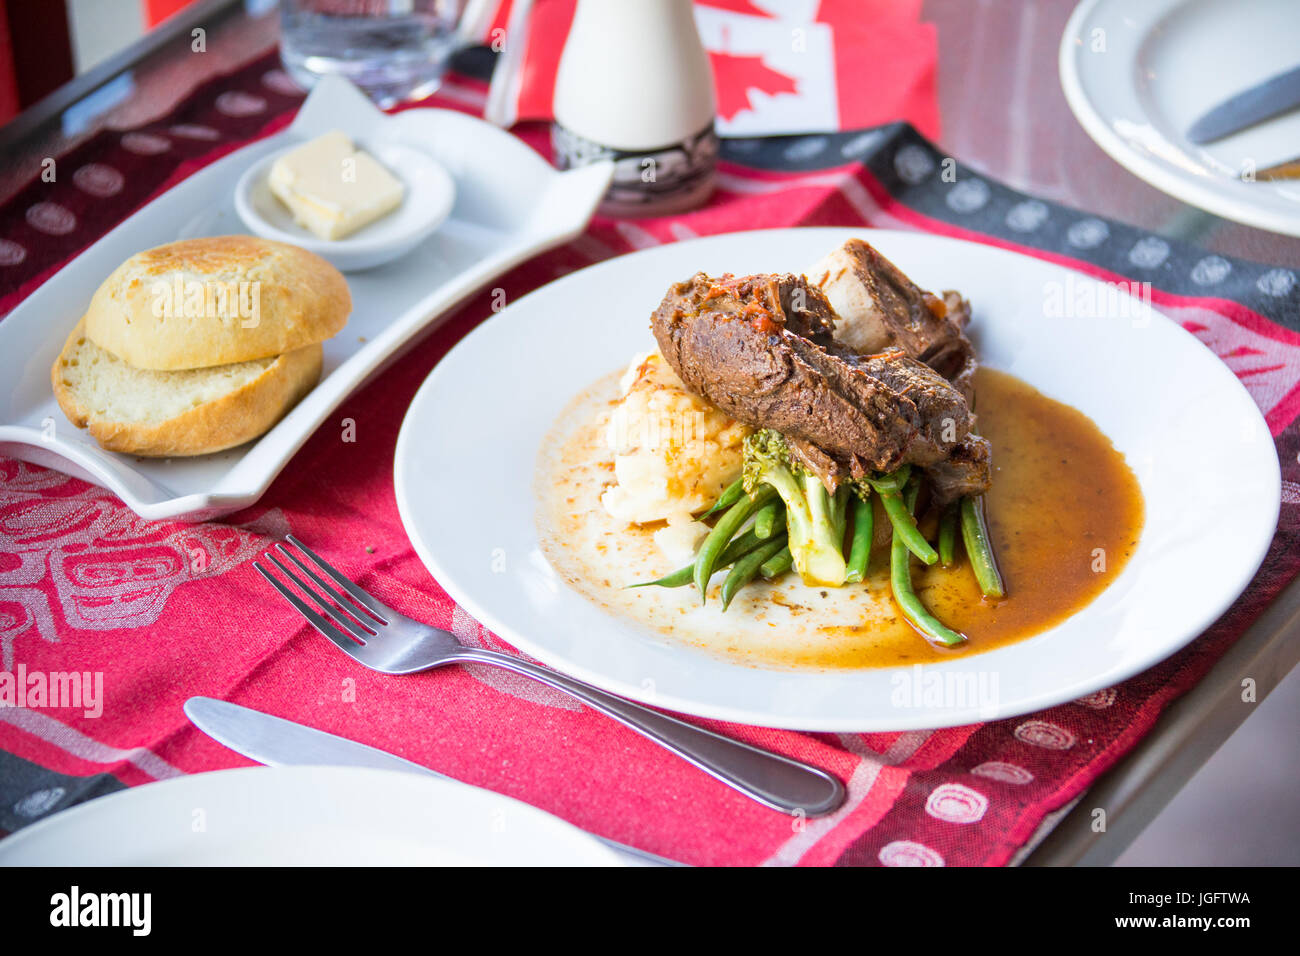 Elk Shank at Salmon N' Bannock Native Food Bistro, Fairfield Slopes, Vancouver, Canada - Stock Image